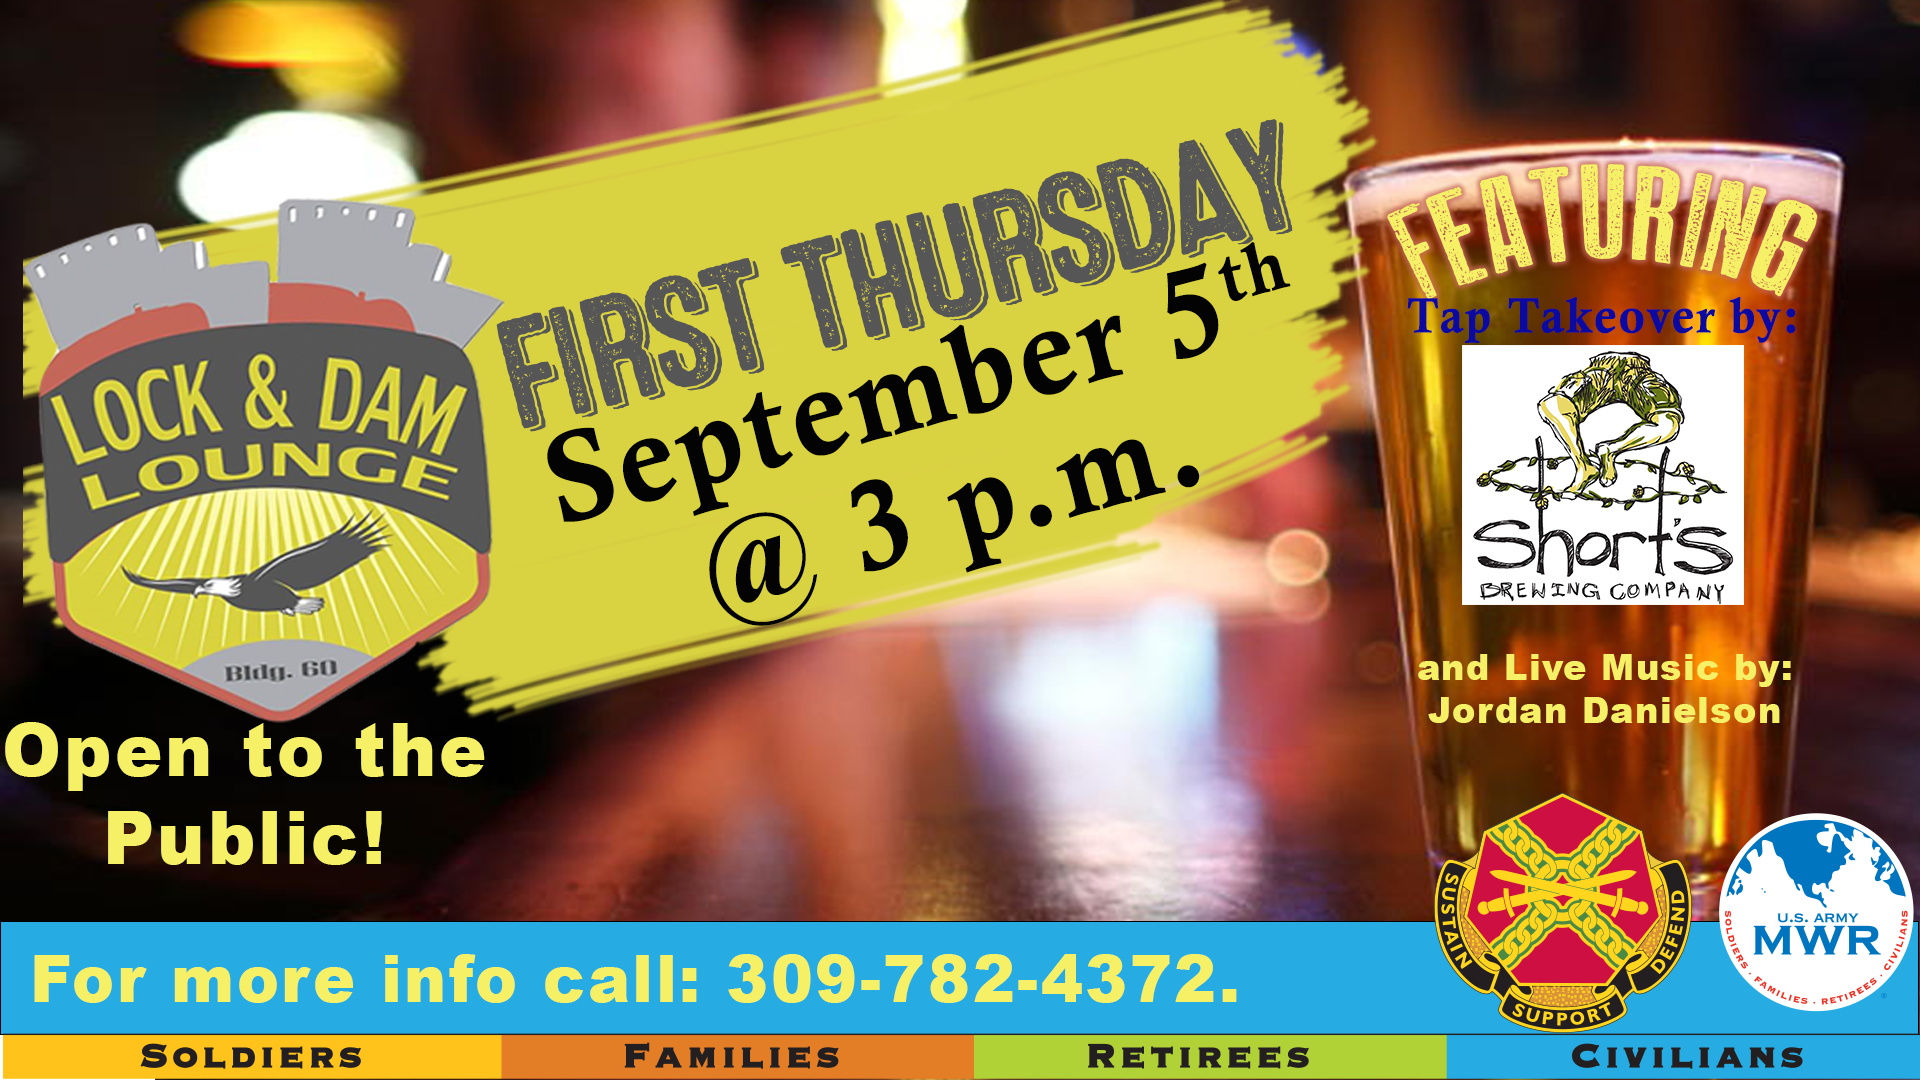 First Thursday Social